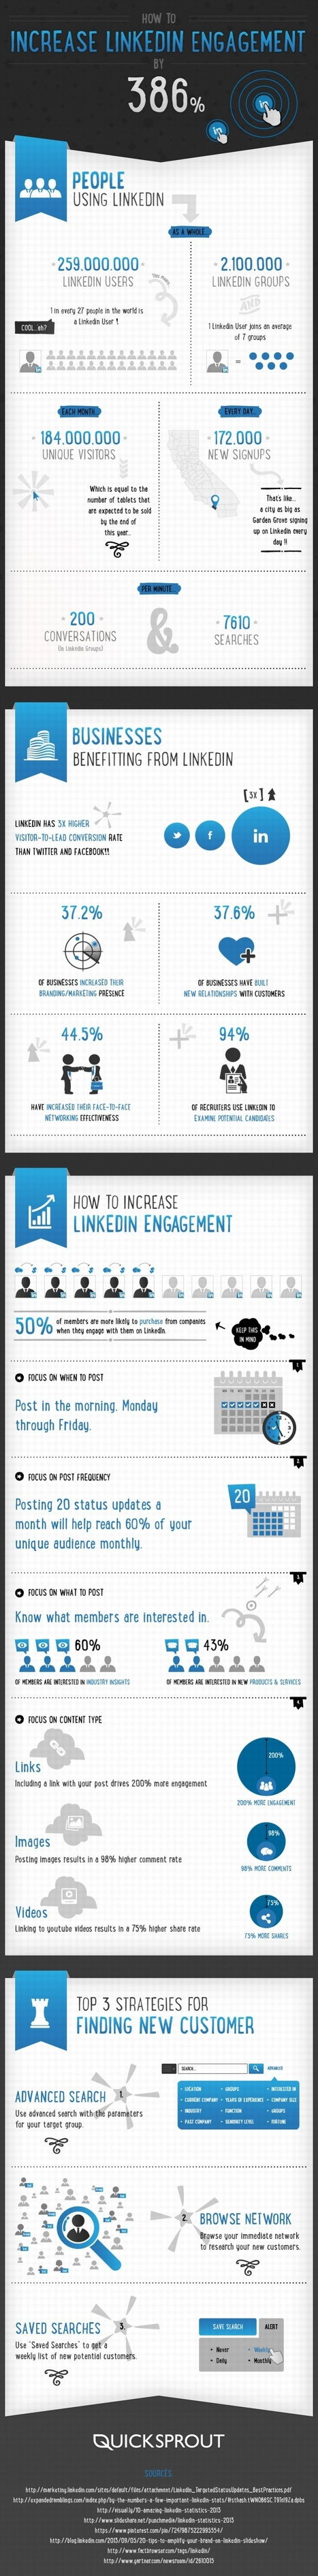 How to Boost LinkedIn Engagement [INFOGRAPHIC] | Super Social Media | Scoop.it